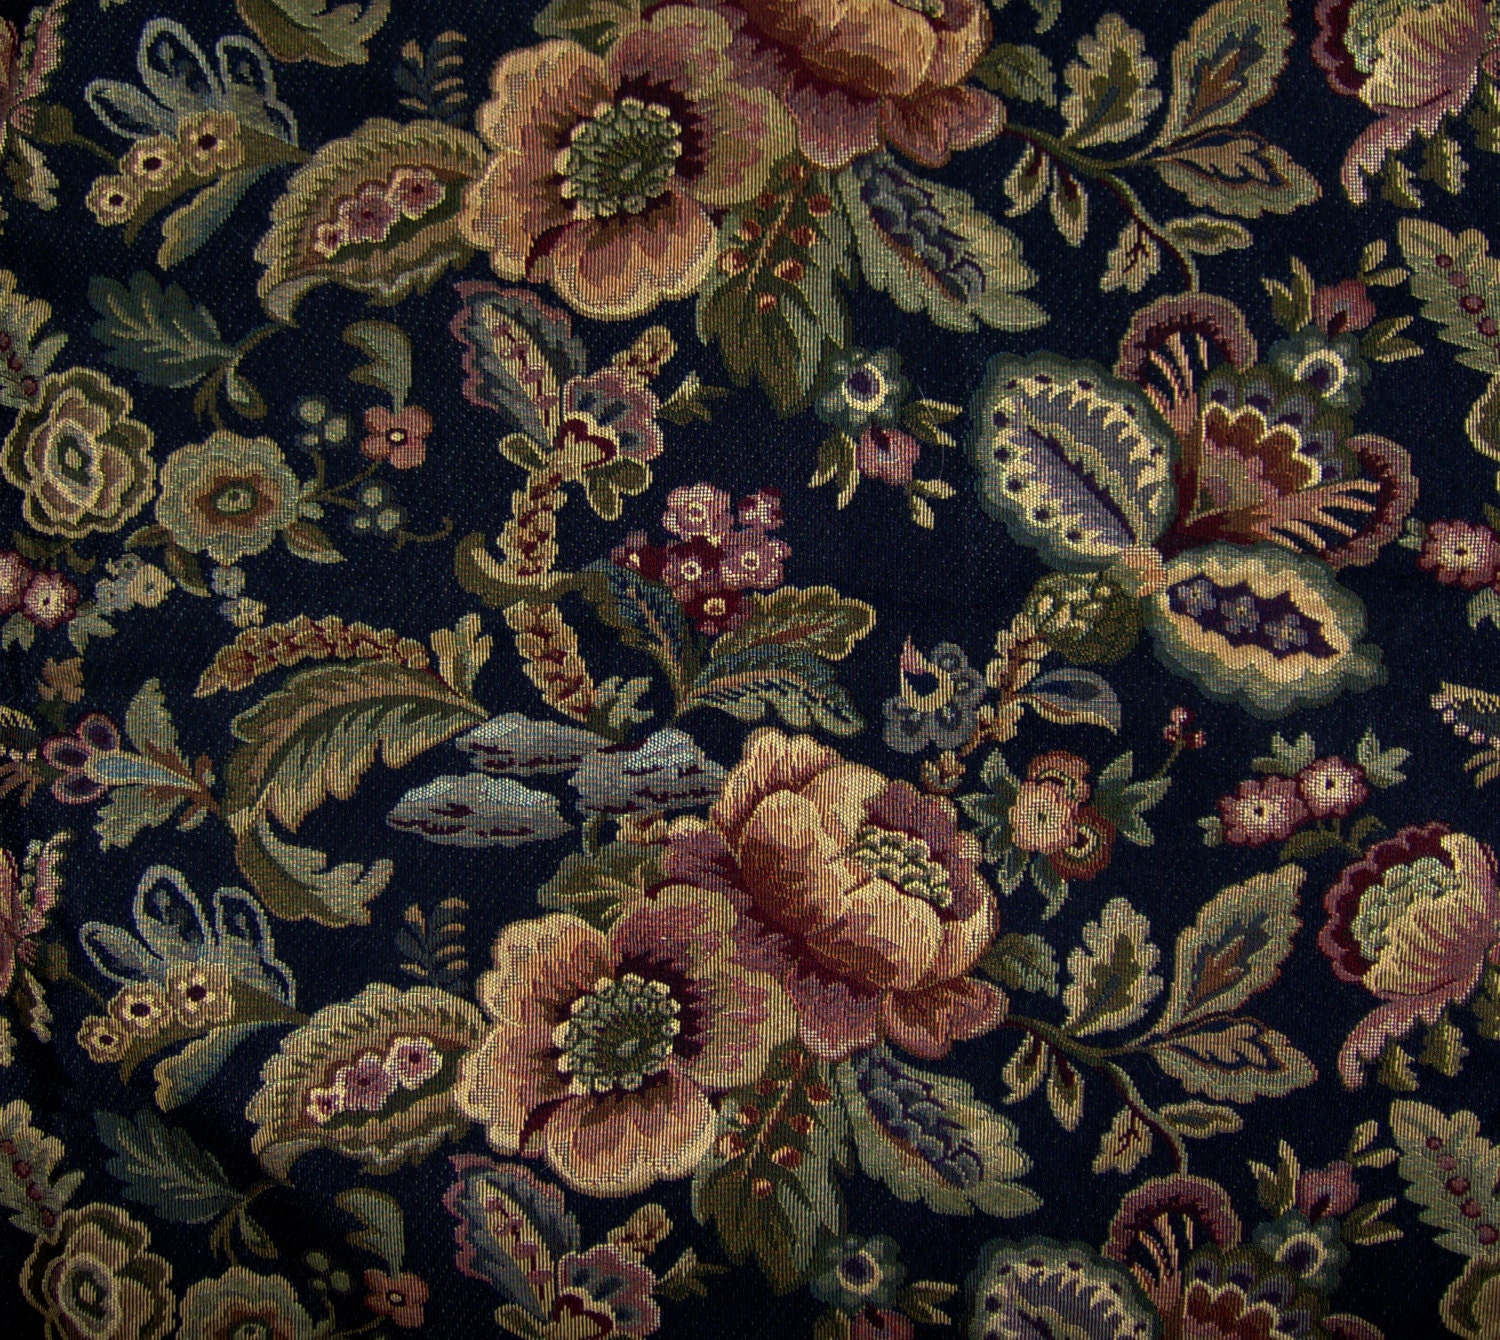 Vintage floral tapestry fabric home dec upholstery woven black for Floral upholstery fabric